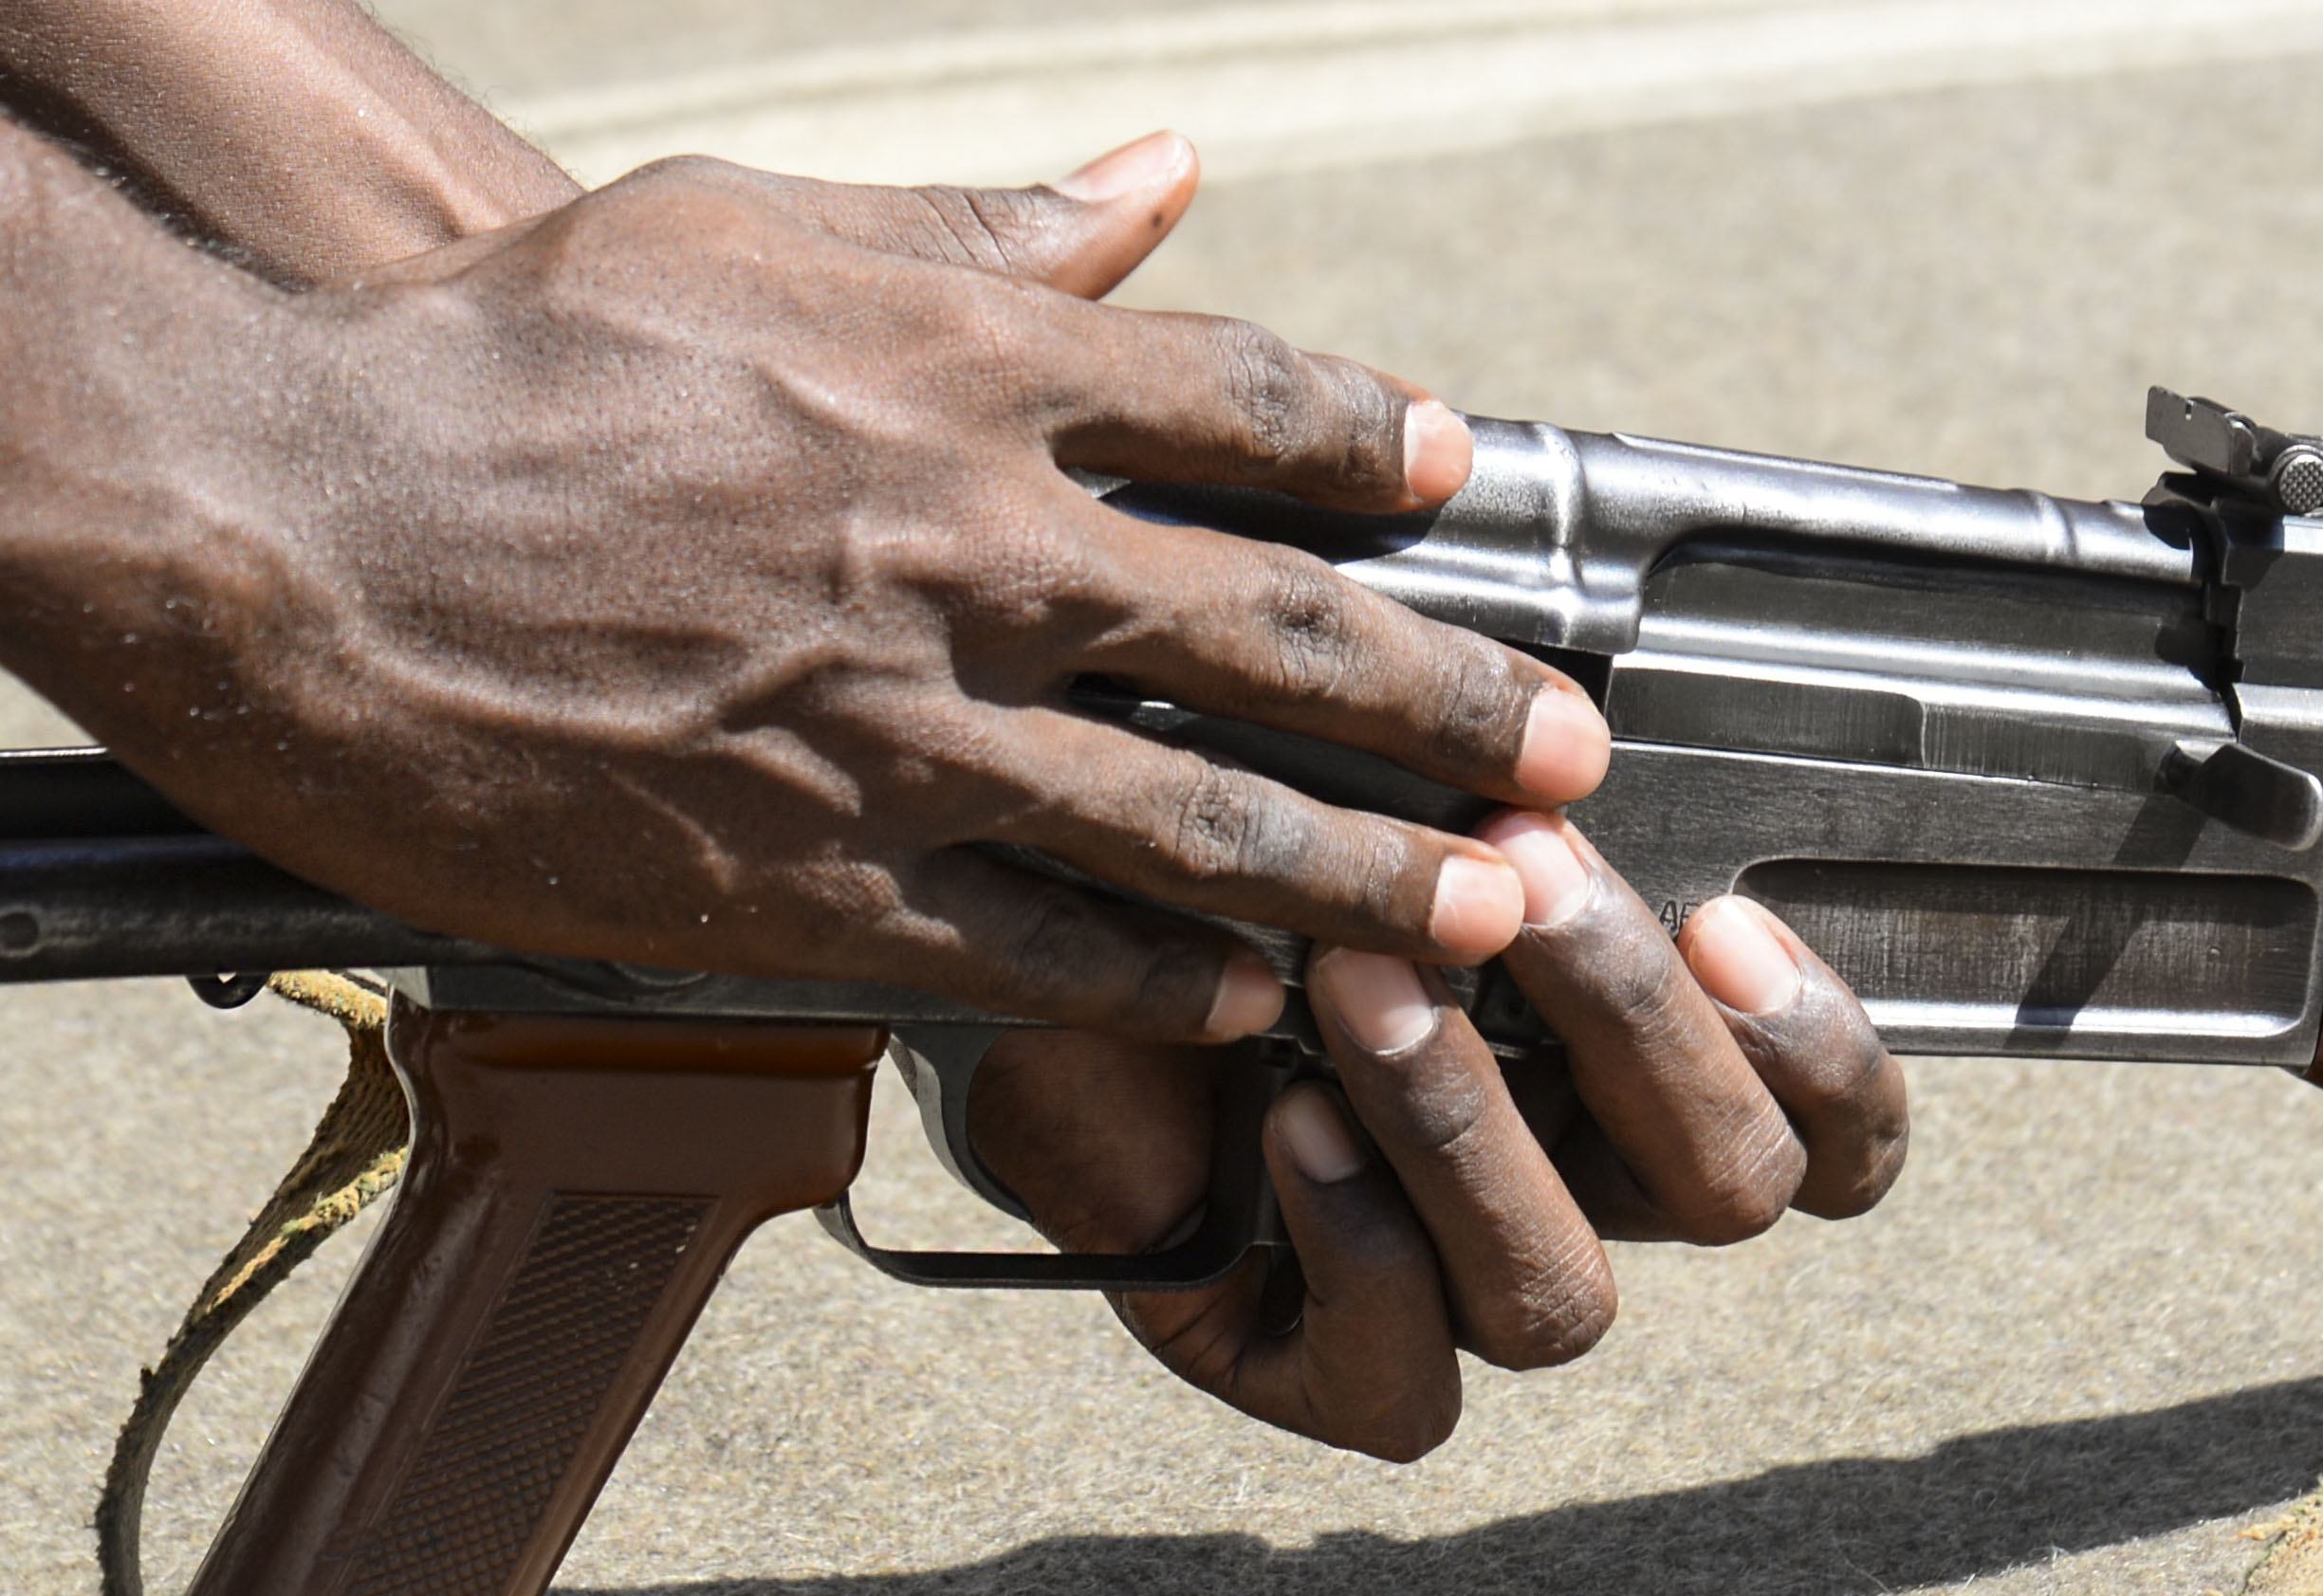 A Djiboutian Army weapons instructor replaces the cover on an AK-47, teaching U.S. Army Reserve Officer Training Corps cadets how to safely disassemble and reassemble the rifle at the Djiboutian Army Academy in Arta, Djibouti, July 25, 2016. More than 30 cadets took turns field-stripping and reassembling the rifle. (U.S. Air Force photo by Staff Sgt. Benjamin Raughton/Released)